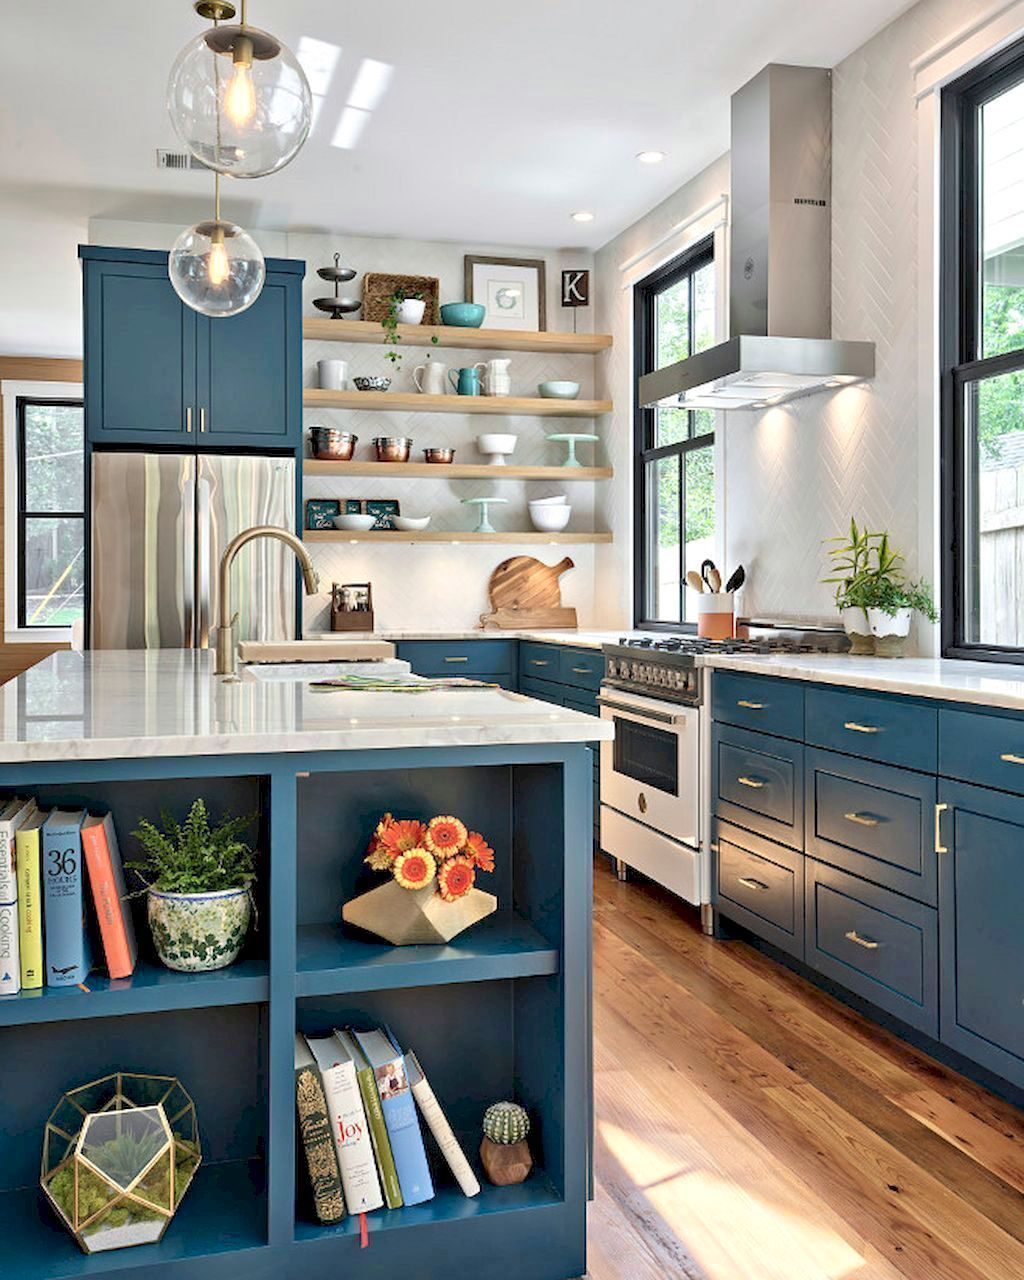 Ideal Distressed Blue Gray Kitchen Cabinets Only In Indoneso Com Kitchen Remodel Small Kitchen Cabinets Decor Kitchen Cabinet Design